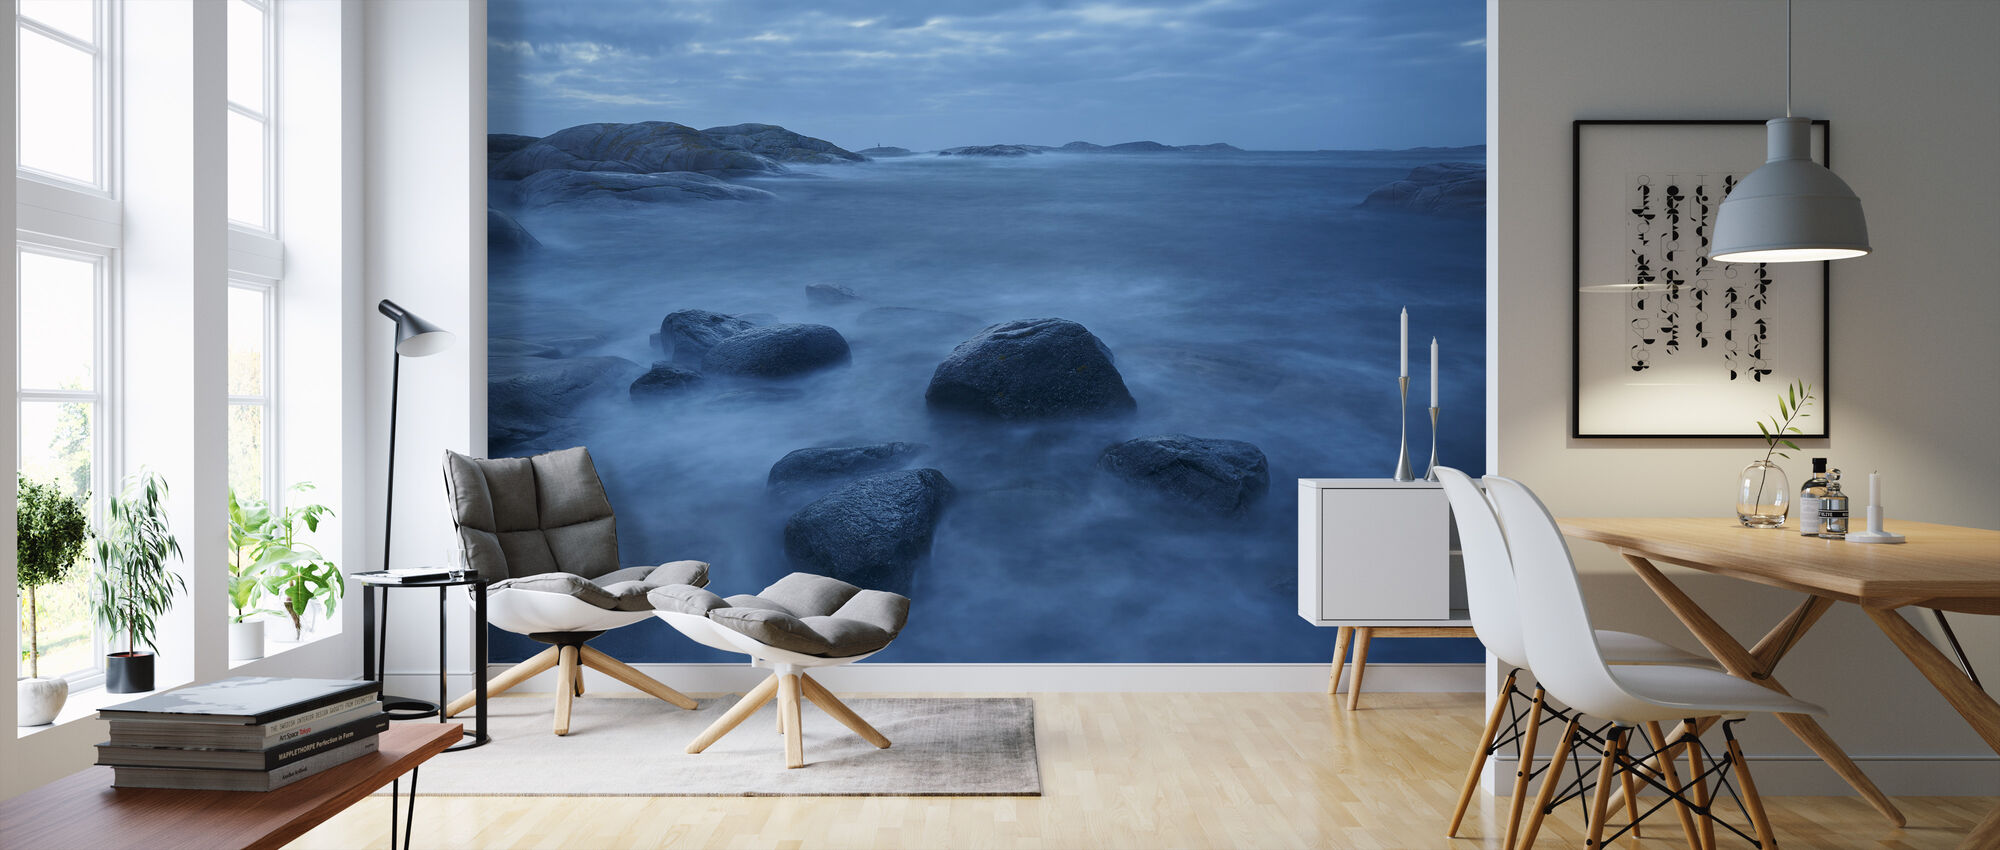 Stormy Clouds over Sea - Wallpaper - Living Room